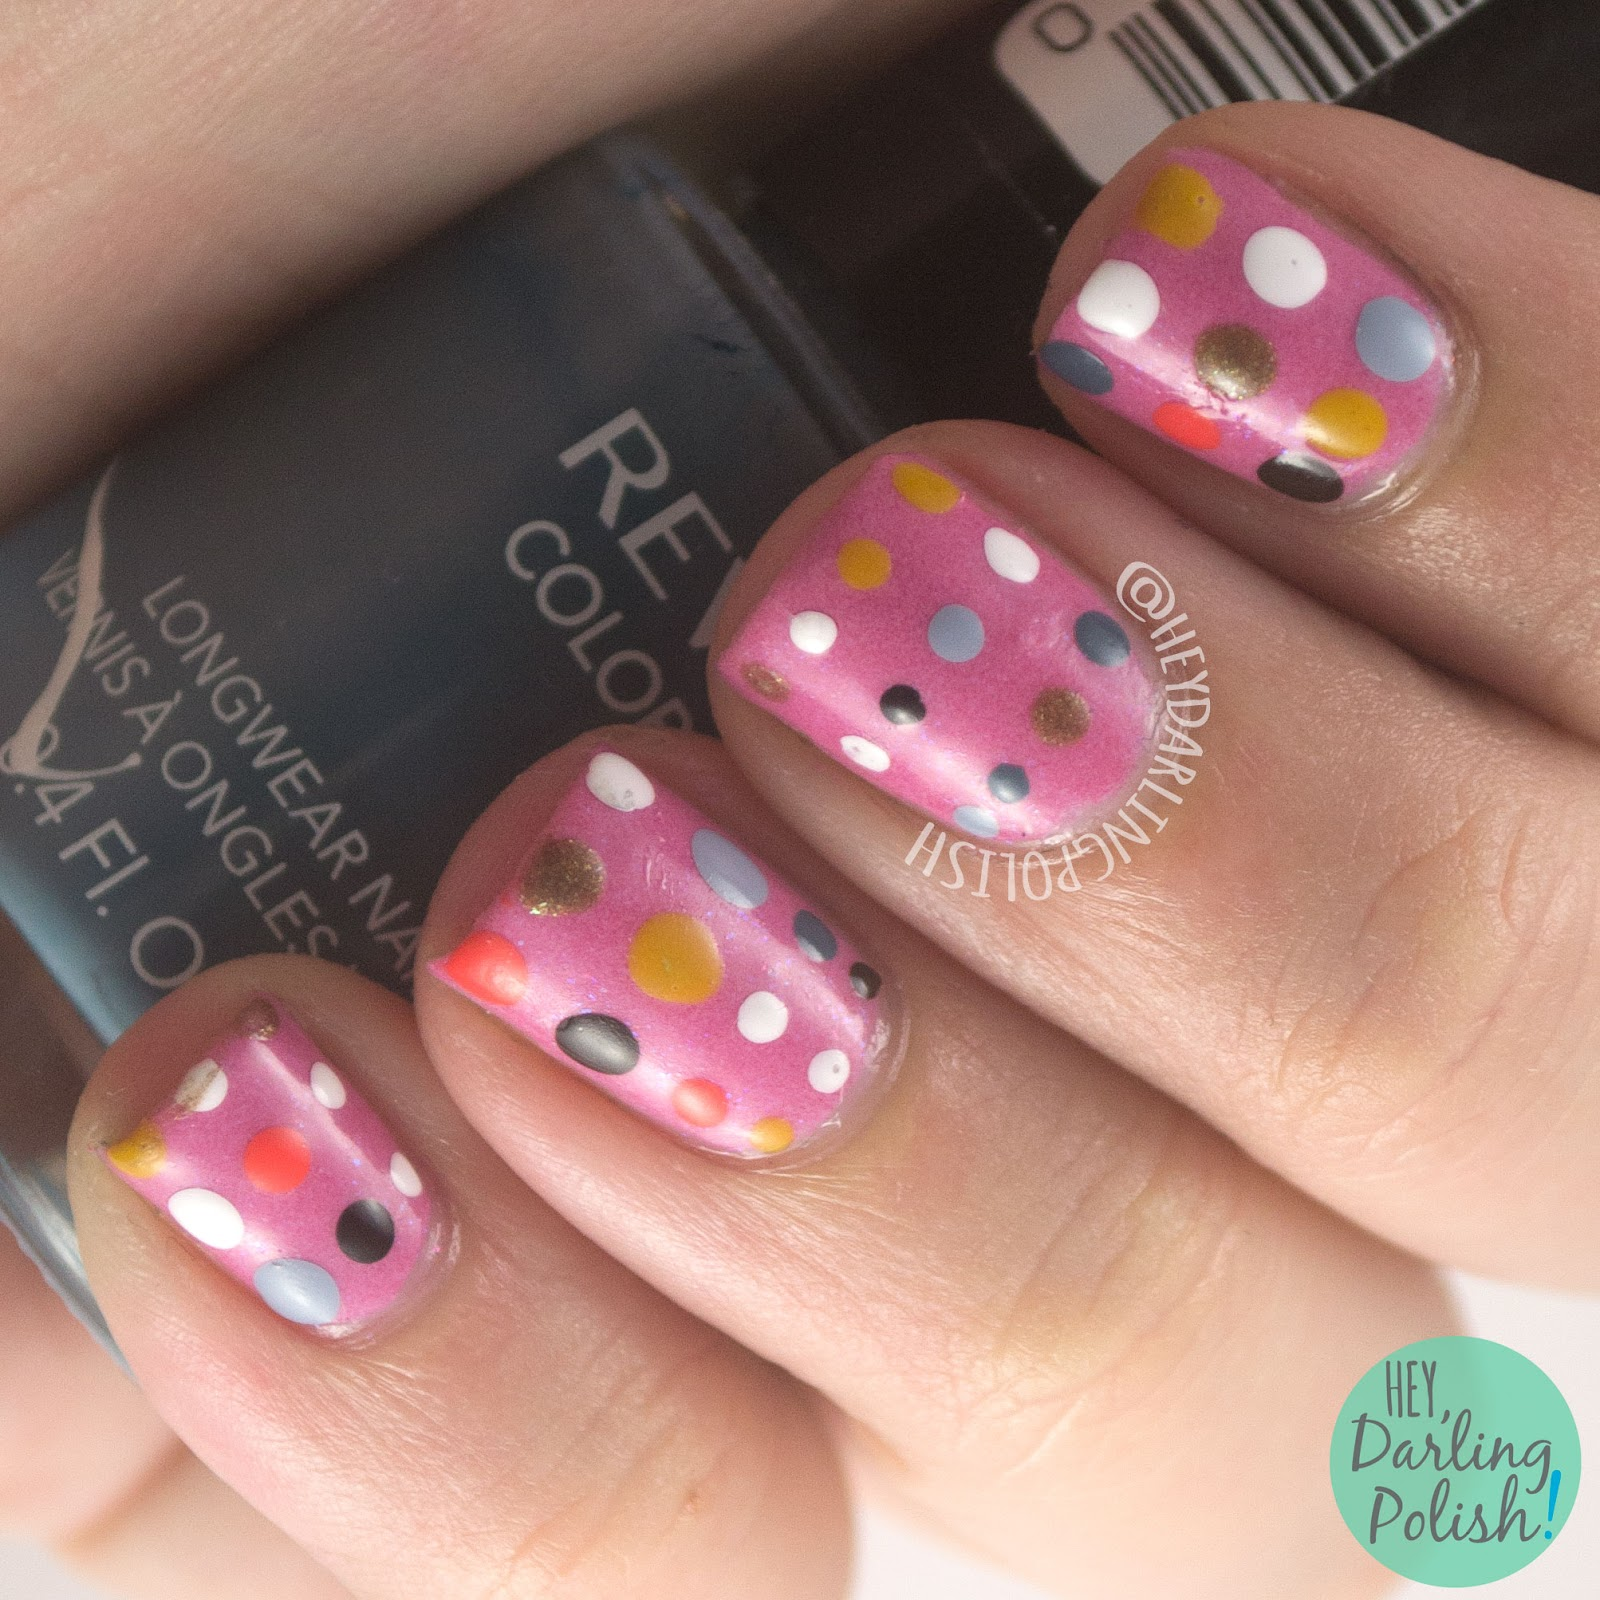 nails, nail art, nail polish, polka dots, dots, hey darling polish, 31 day challenge, 31dc2014